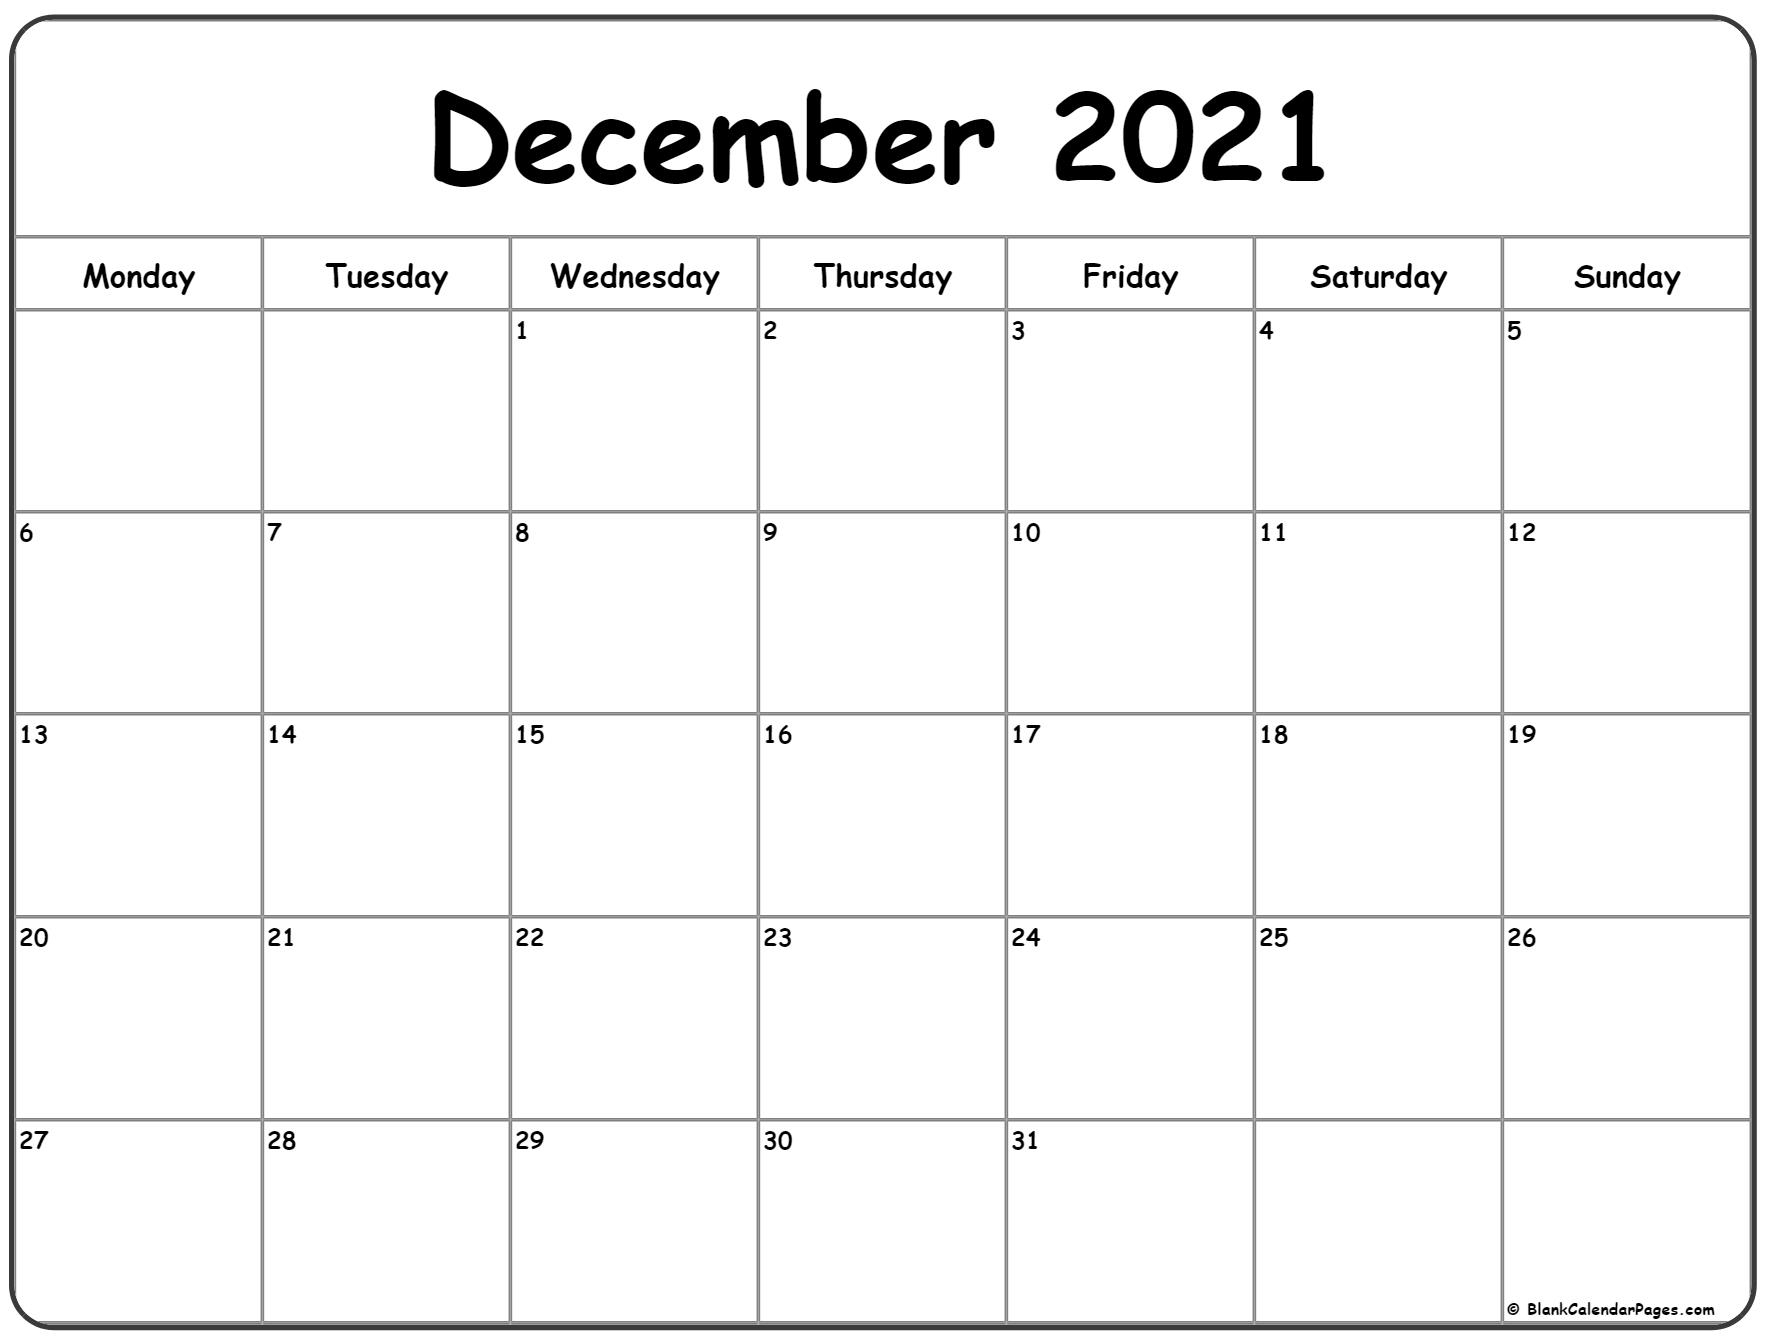 Catch Blank Monthly Calendar Saturday To Friday December 2021